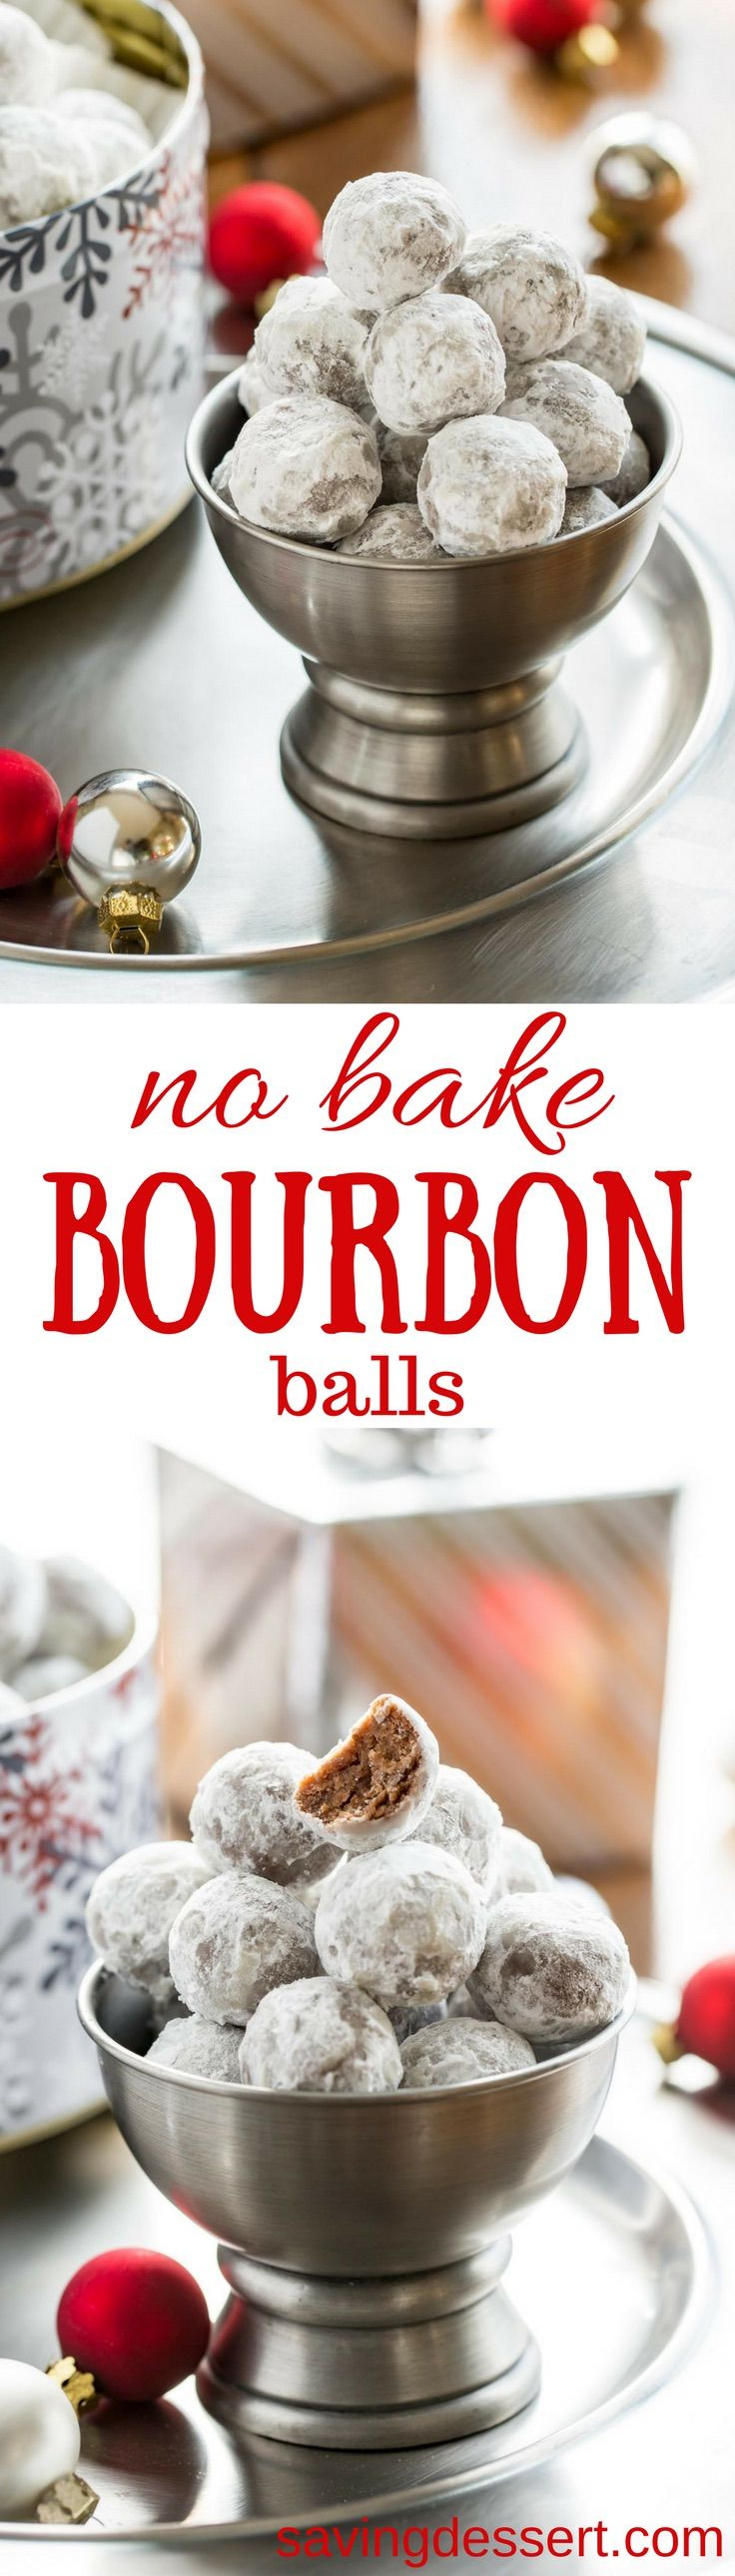 Bourbon Balls ~ an easy no-bake cookiethat's been a family favorite for generations. Grab a bottle of your favorite bourbon or rum and mix up these delicious grownup holiday treat